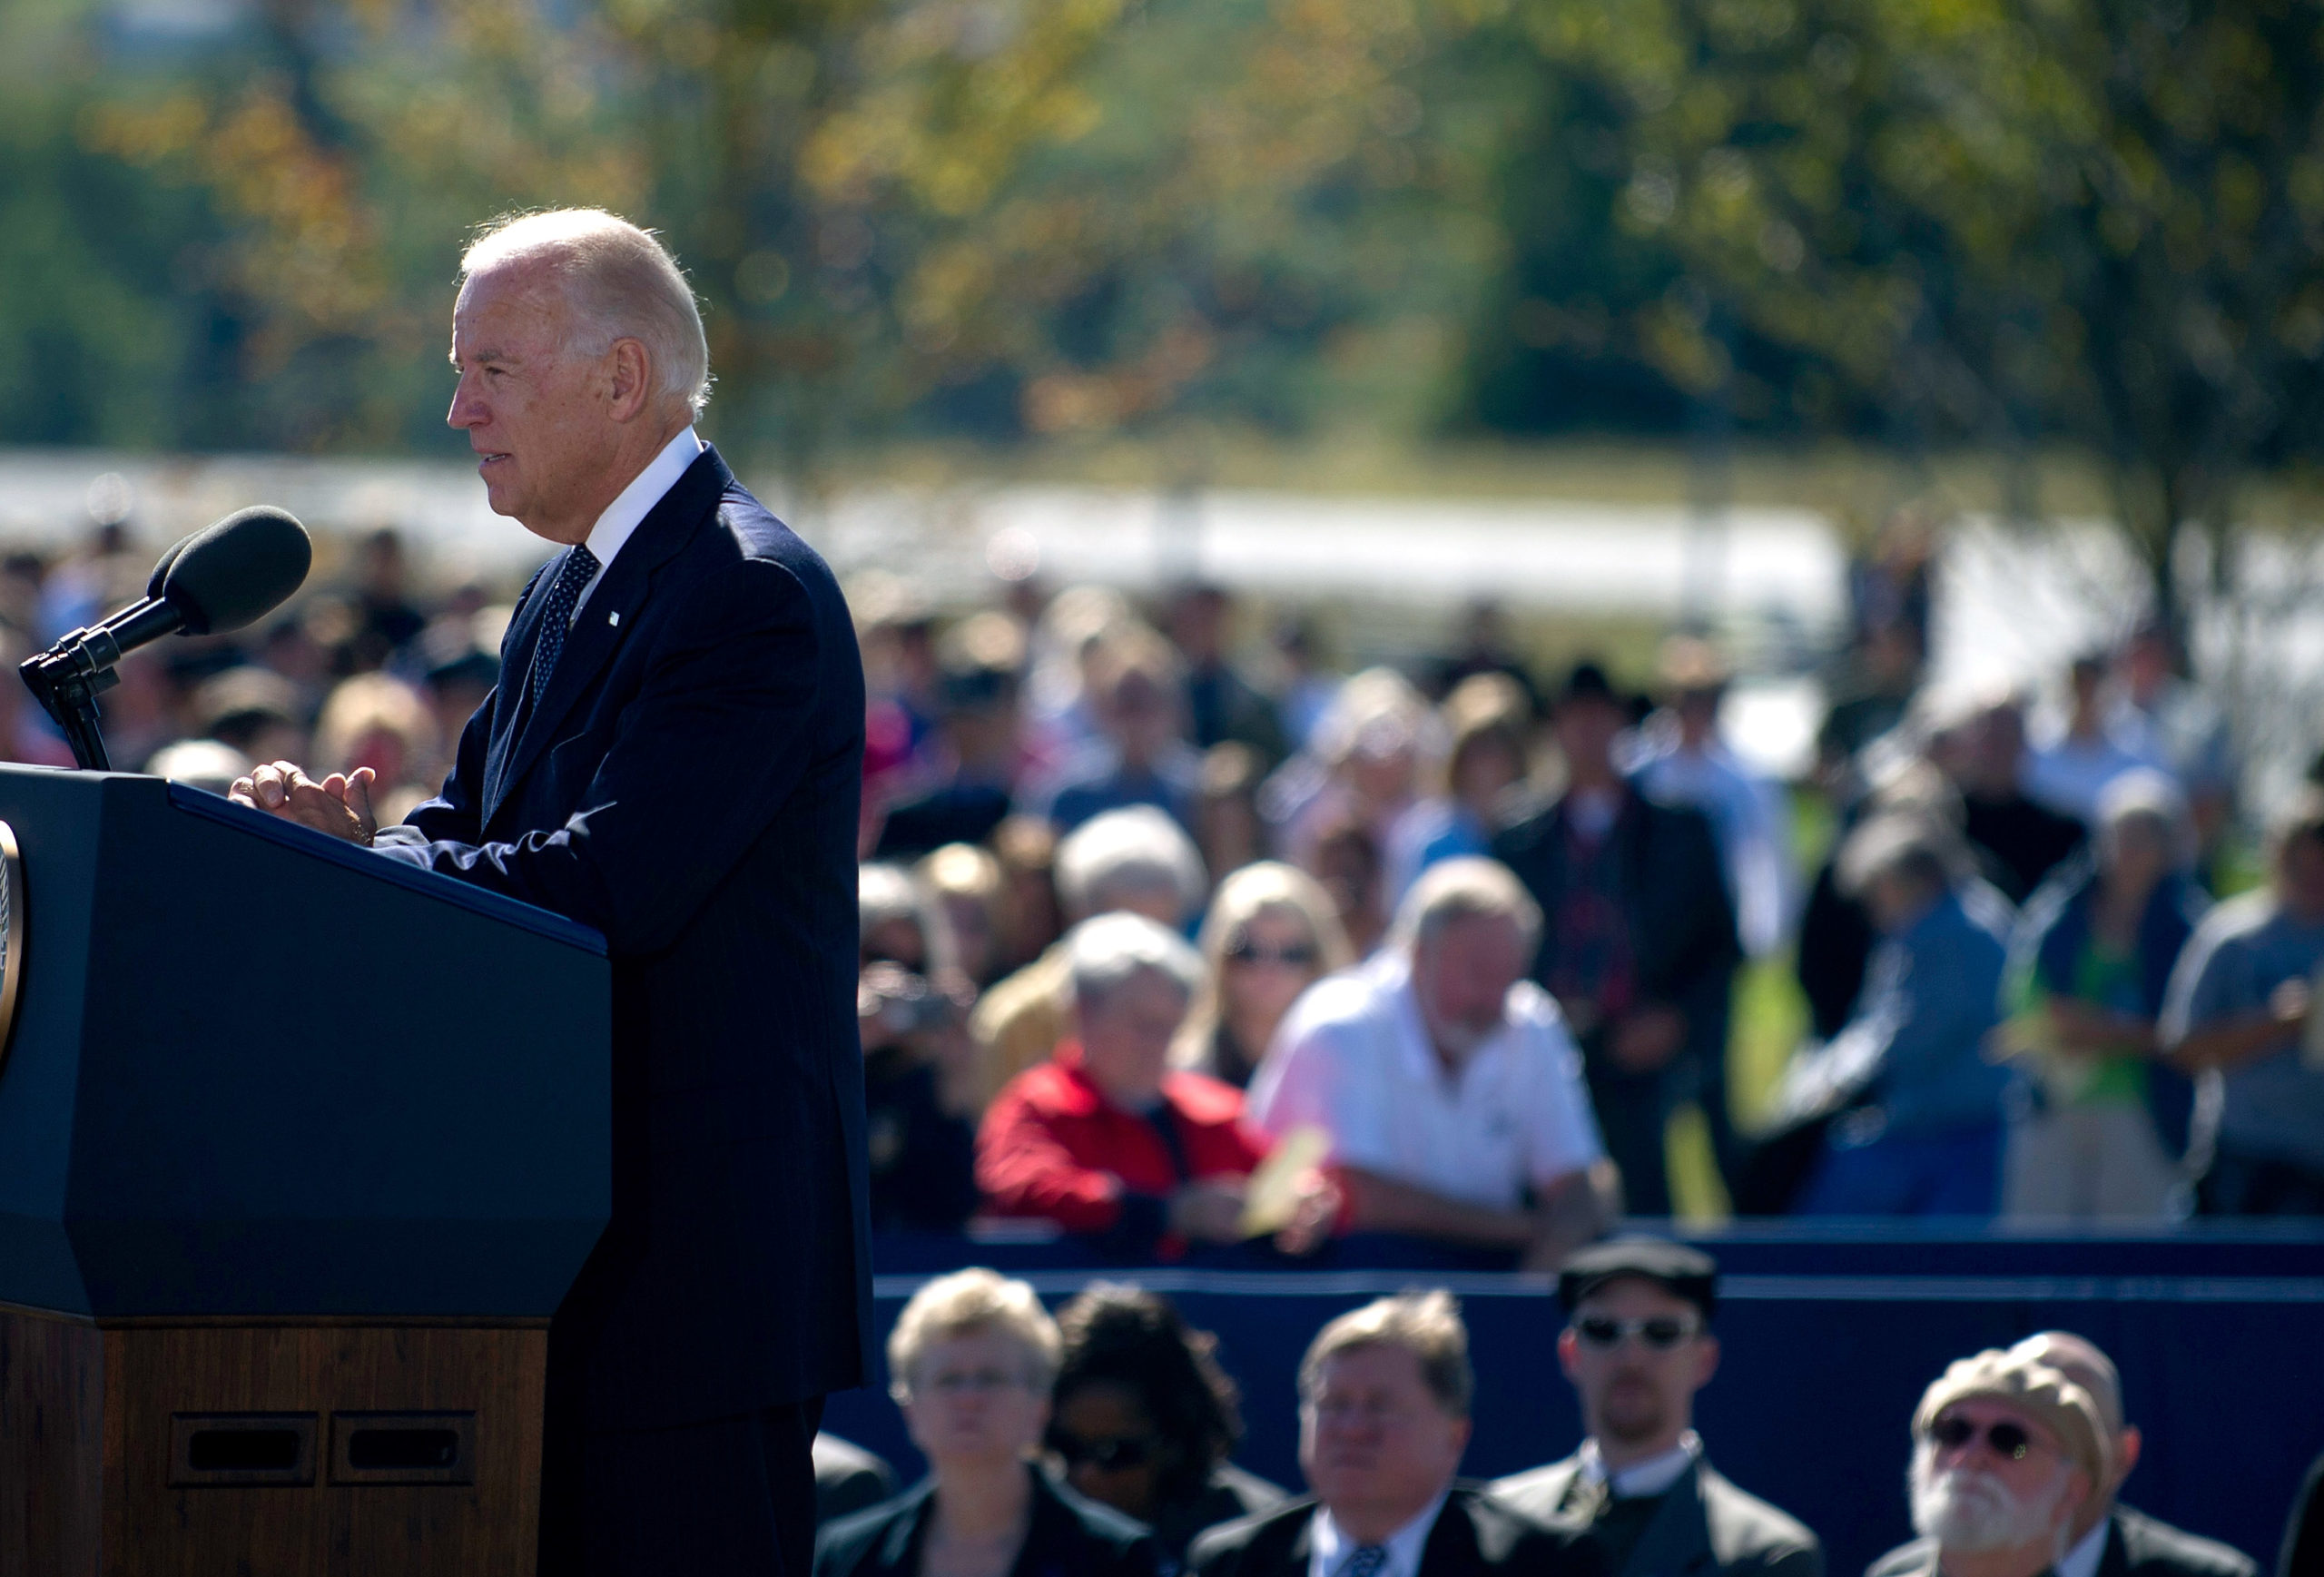 Joseph Biden speaks at the Flight 93 National Memorial during observances commemorating the eleventh anniversary of the 9/11 attacks. (Photo by Jeff Swensen/Getty Images)